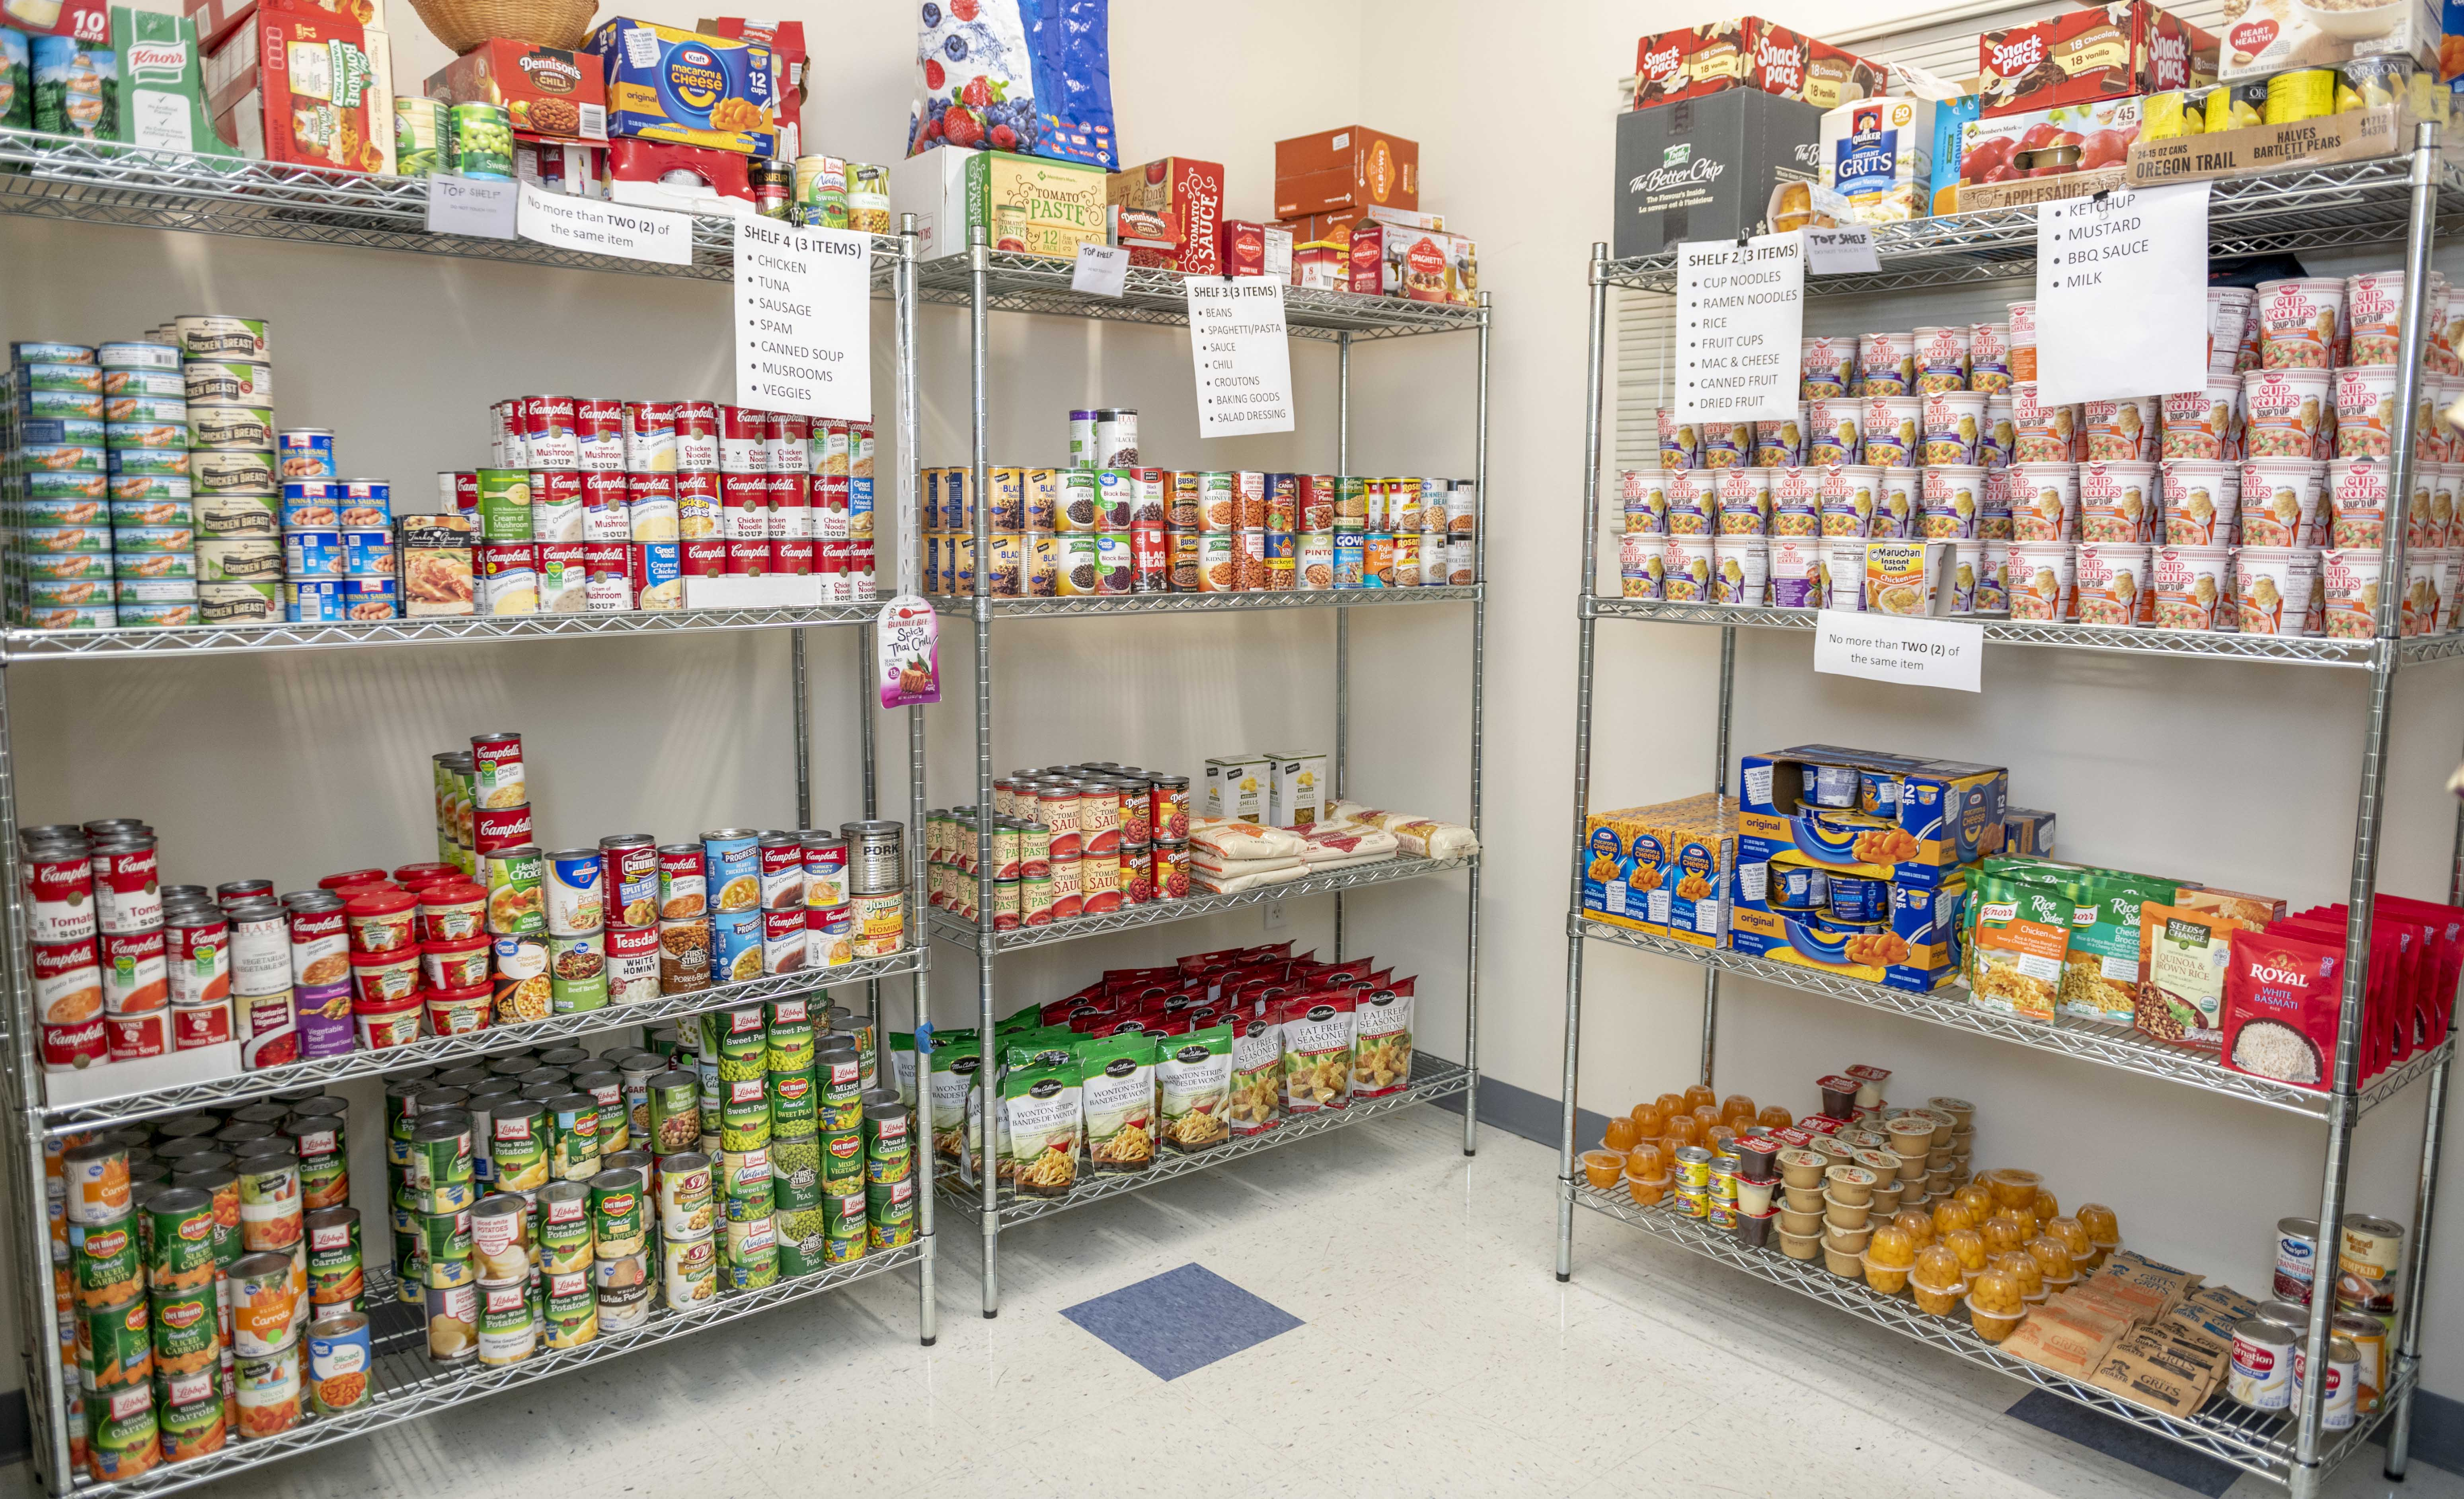 Los Angeles County Supervisor Janice Hahn's office recently awarded a $10,000 grant to the El Camino College Warrior Pantry to assist in efforts that help students facing food insecurities.